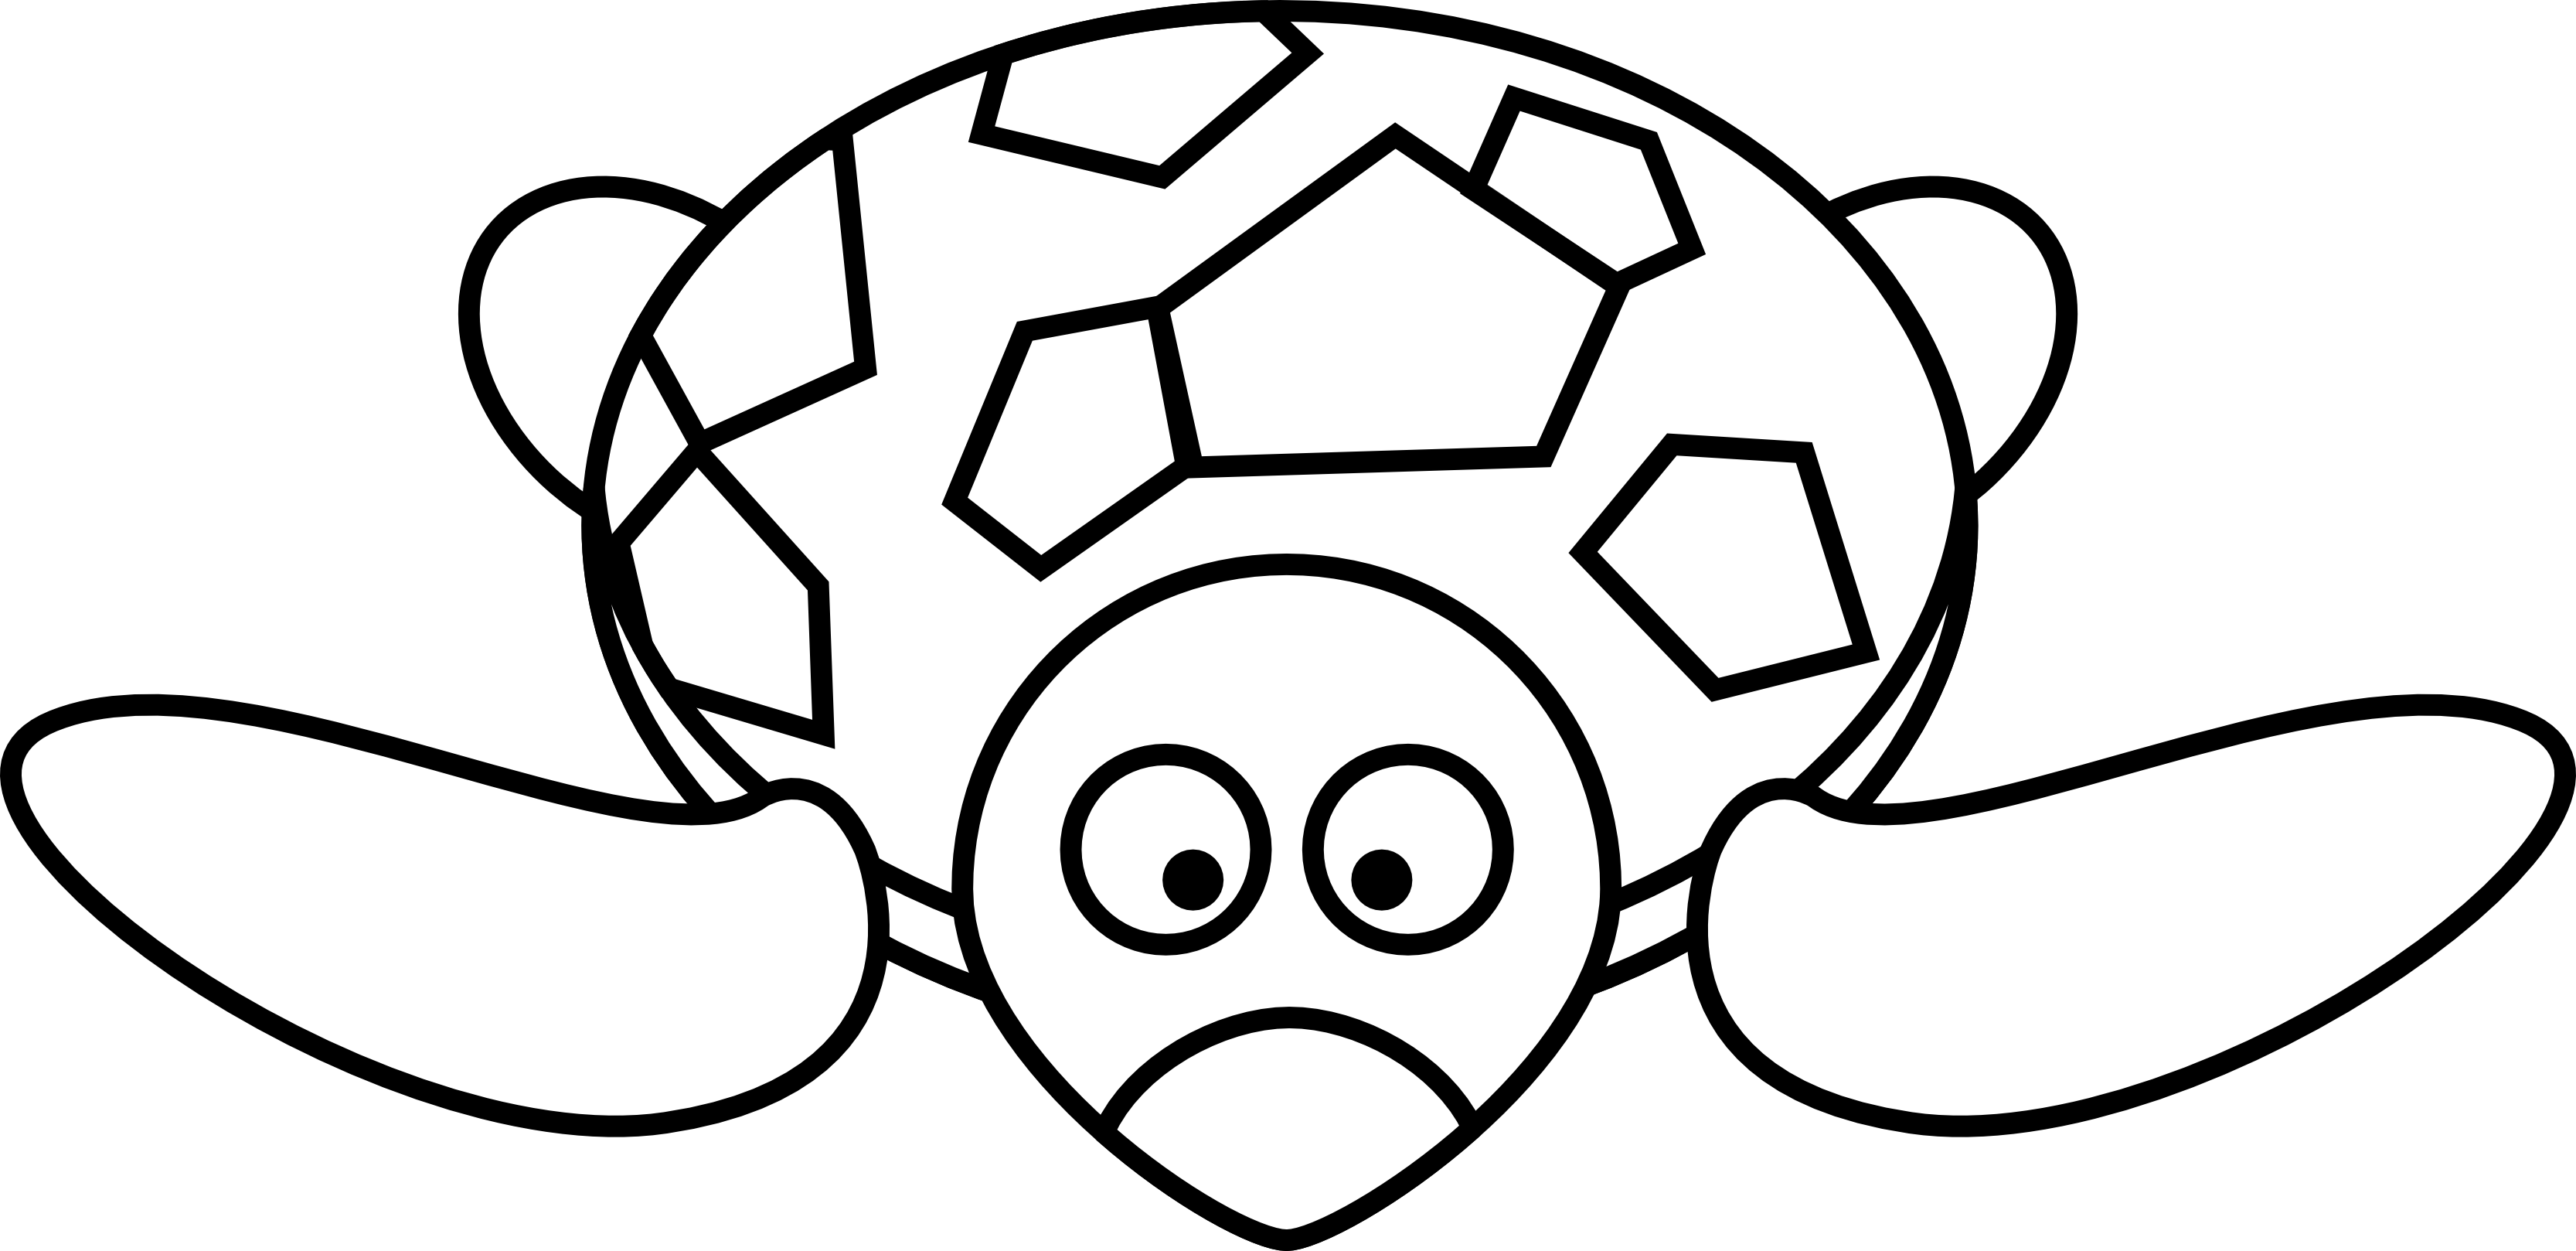 Line Drawings Of Cartoon Animals : Lemmling cartoon turtle black white line art clipart